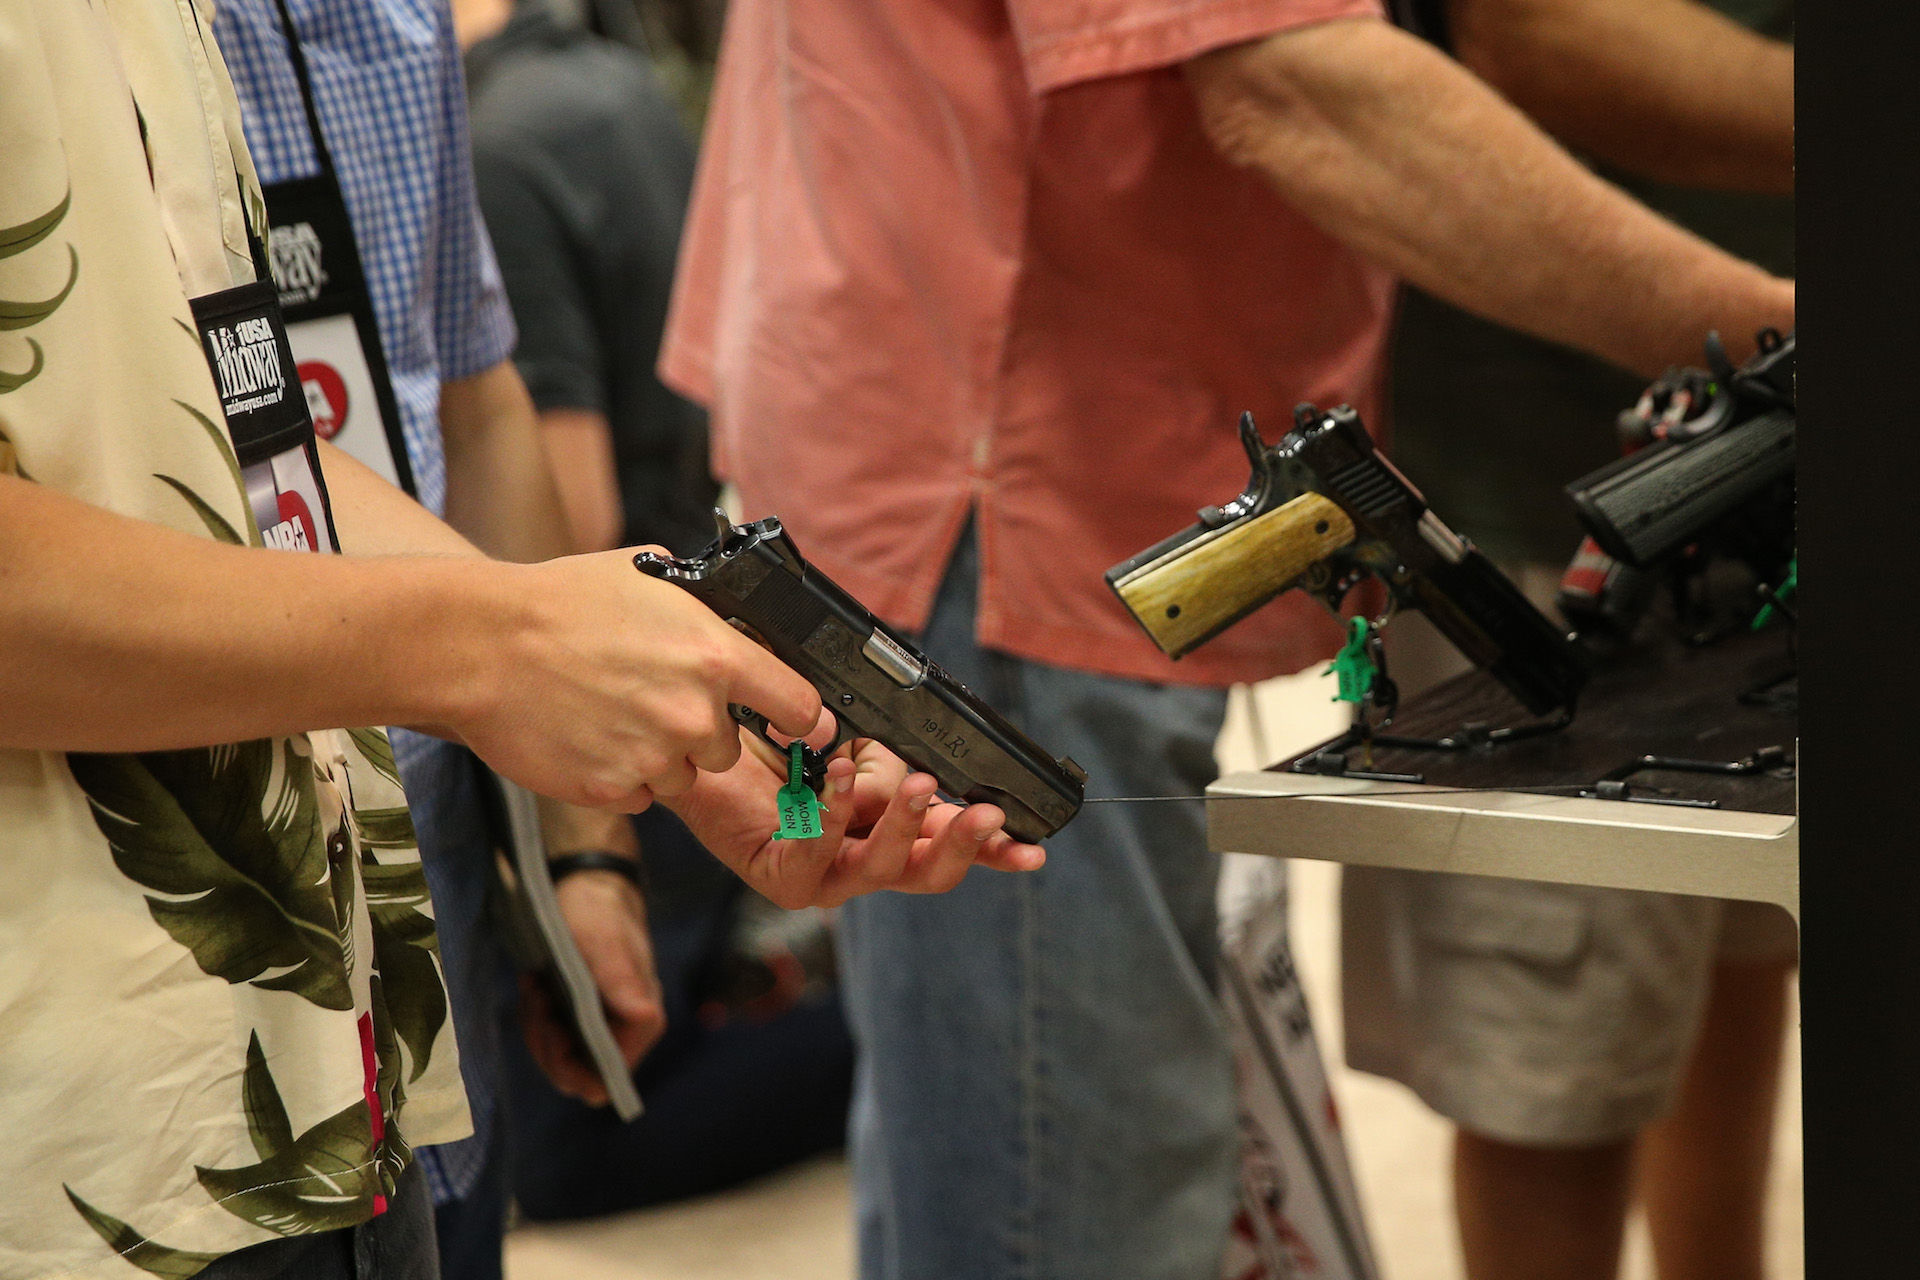 Thursday move to illustrate new paradigm in gun rights advocacy